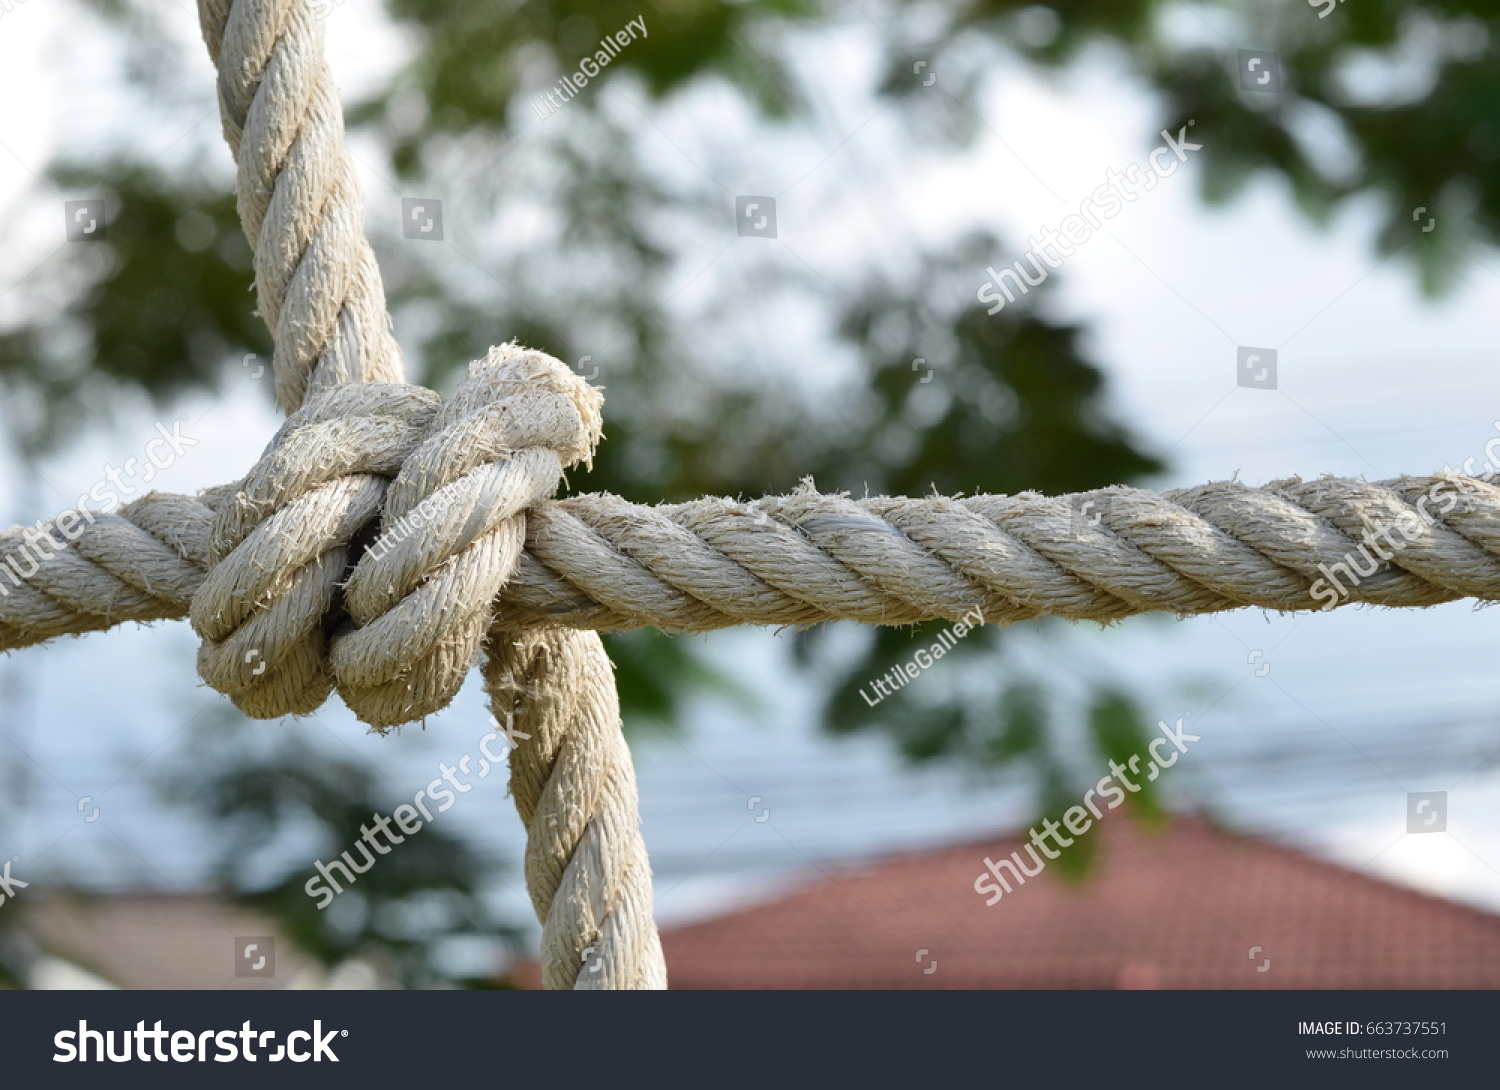 Rope knot line tied together nature stock photo 663737551 rope knot line tied together with nature backgroundas a symbol for trust teamwork or biocorpaavc Choice Image